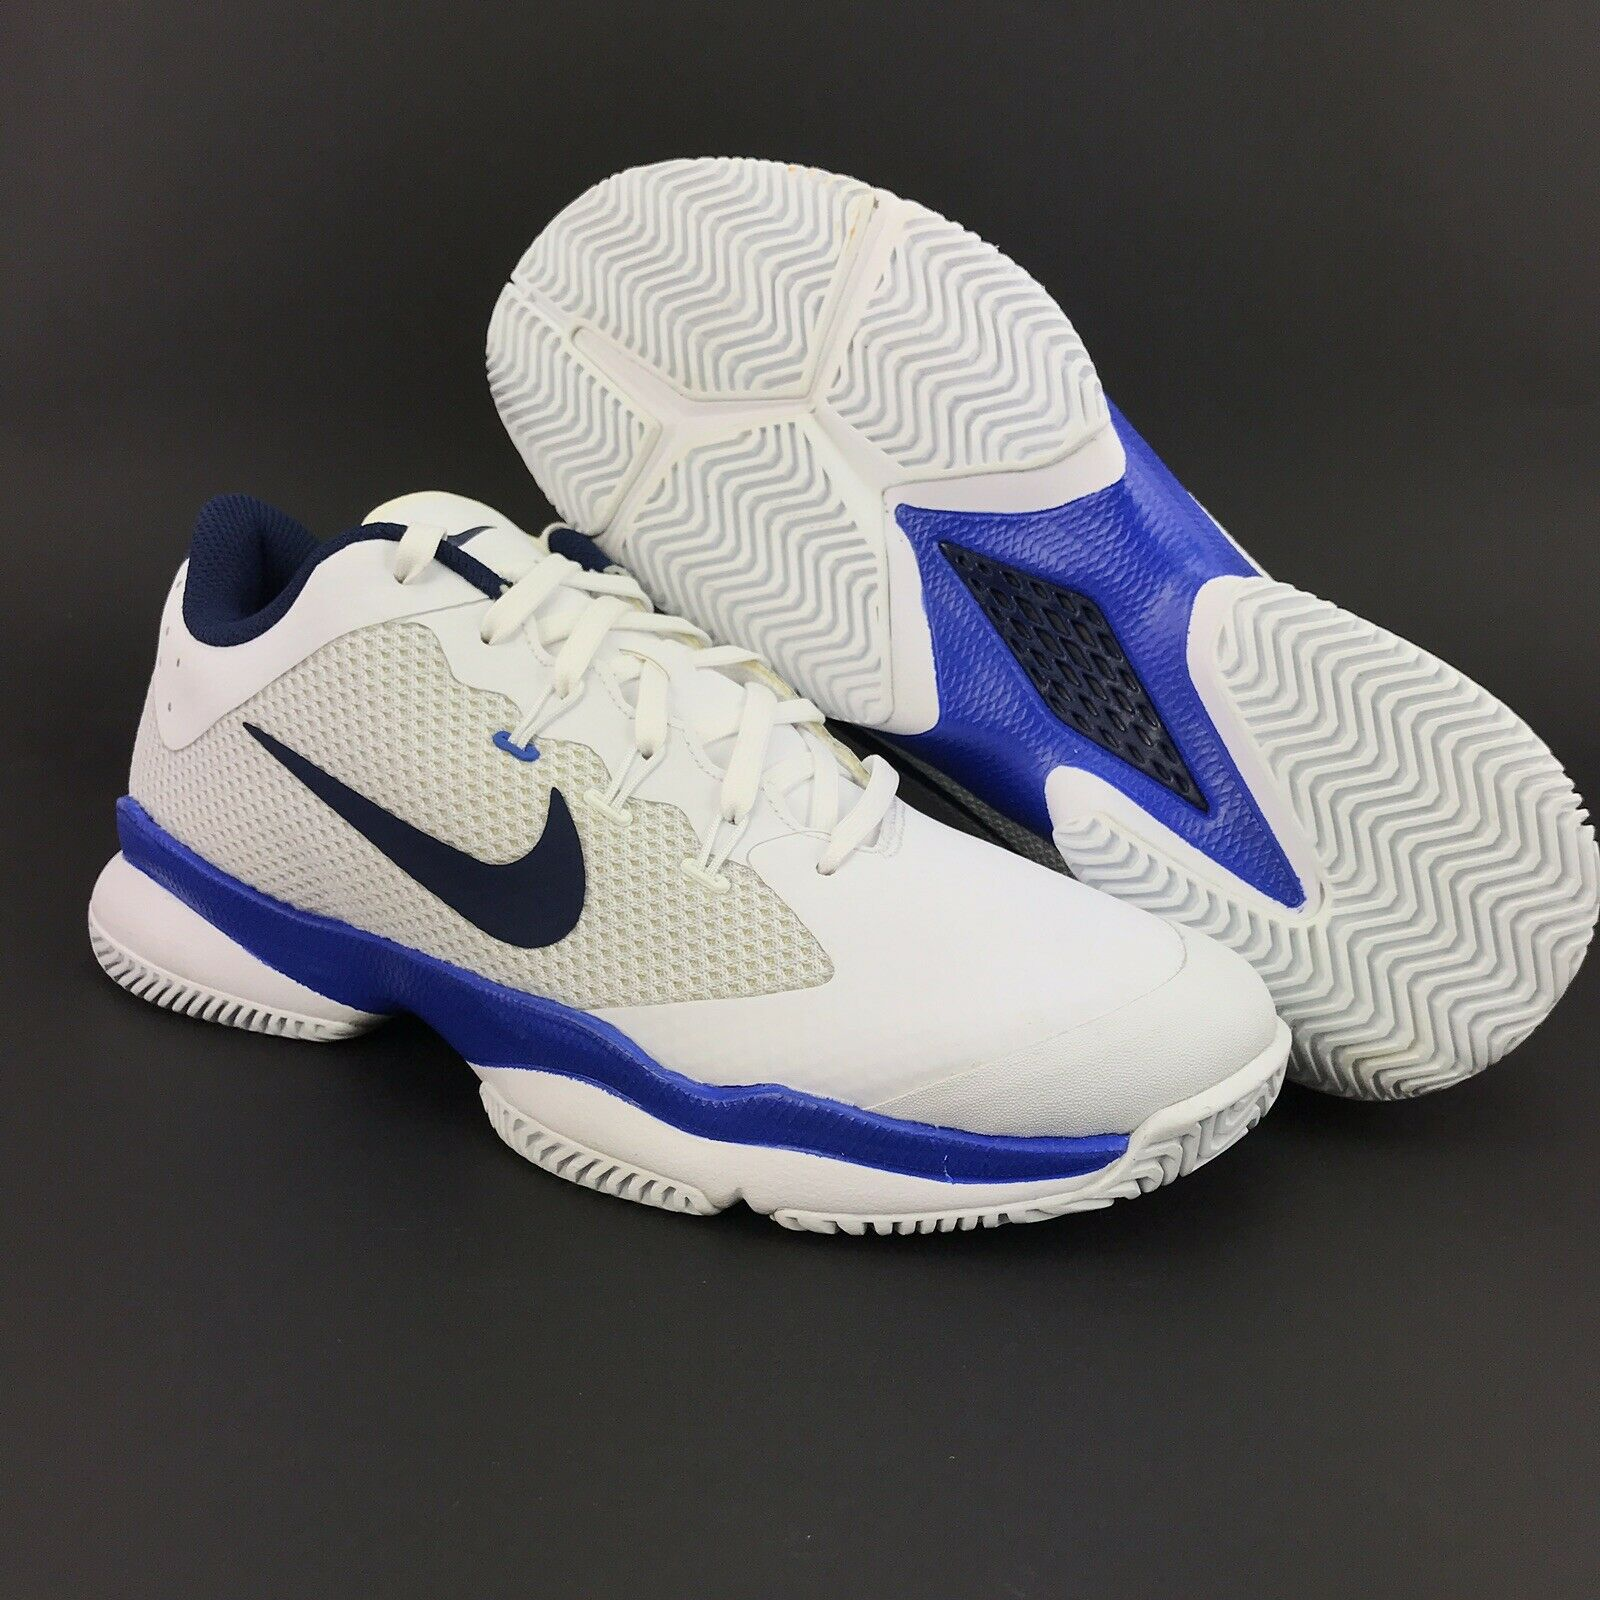 Nike Womens Air Zoom Ultra White bluee Tennis shoes Size 11